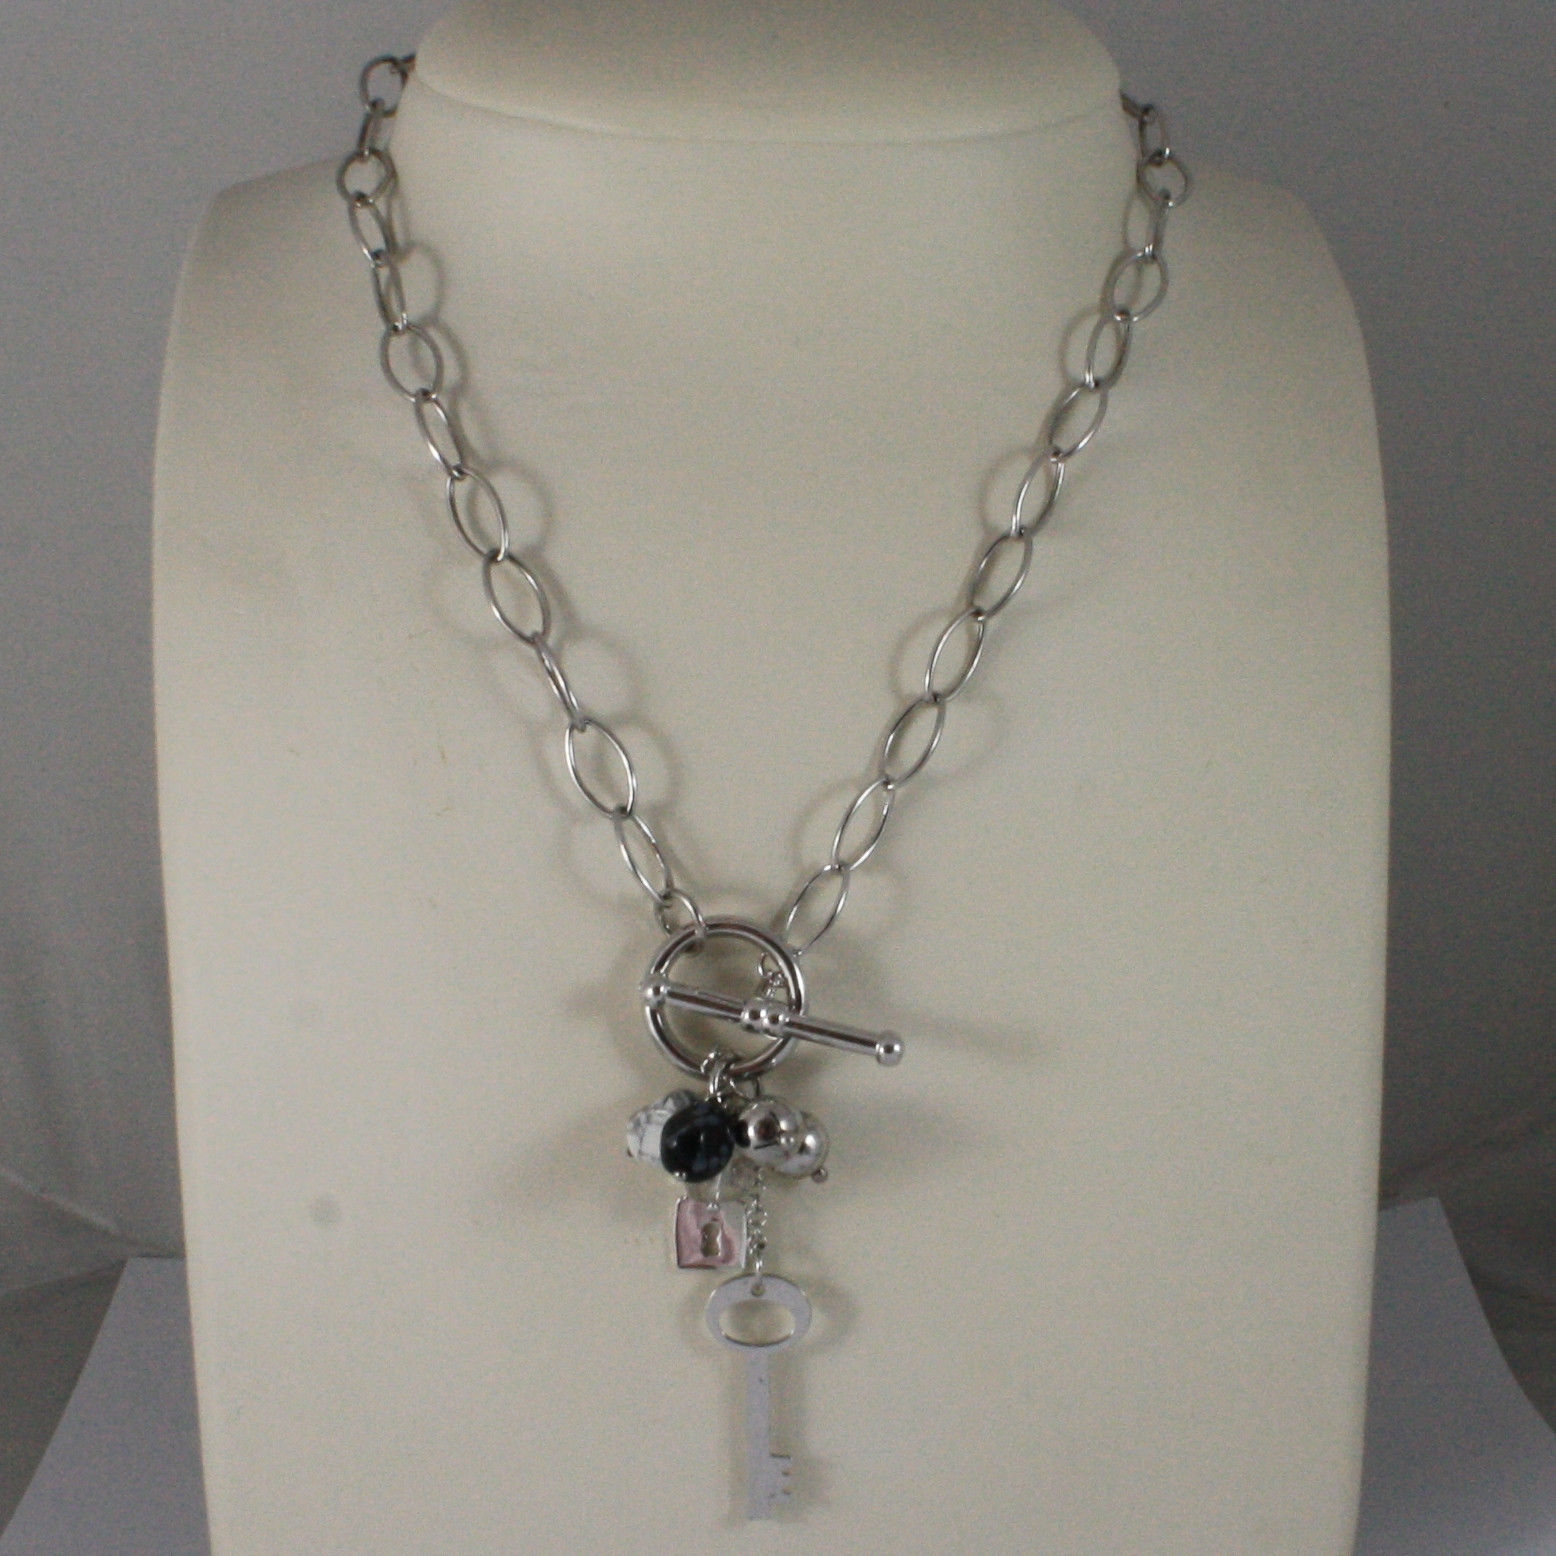 .925 SILVER RHODIUM NECKLACE WITH TRANSPARENT CRISTAL, WHITE HOWLITE AND CHARMS